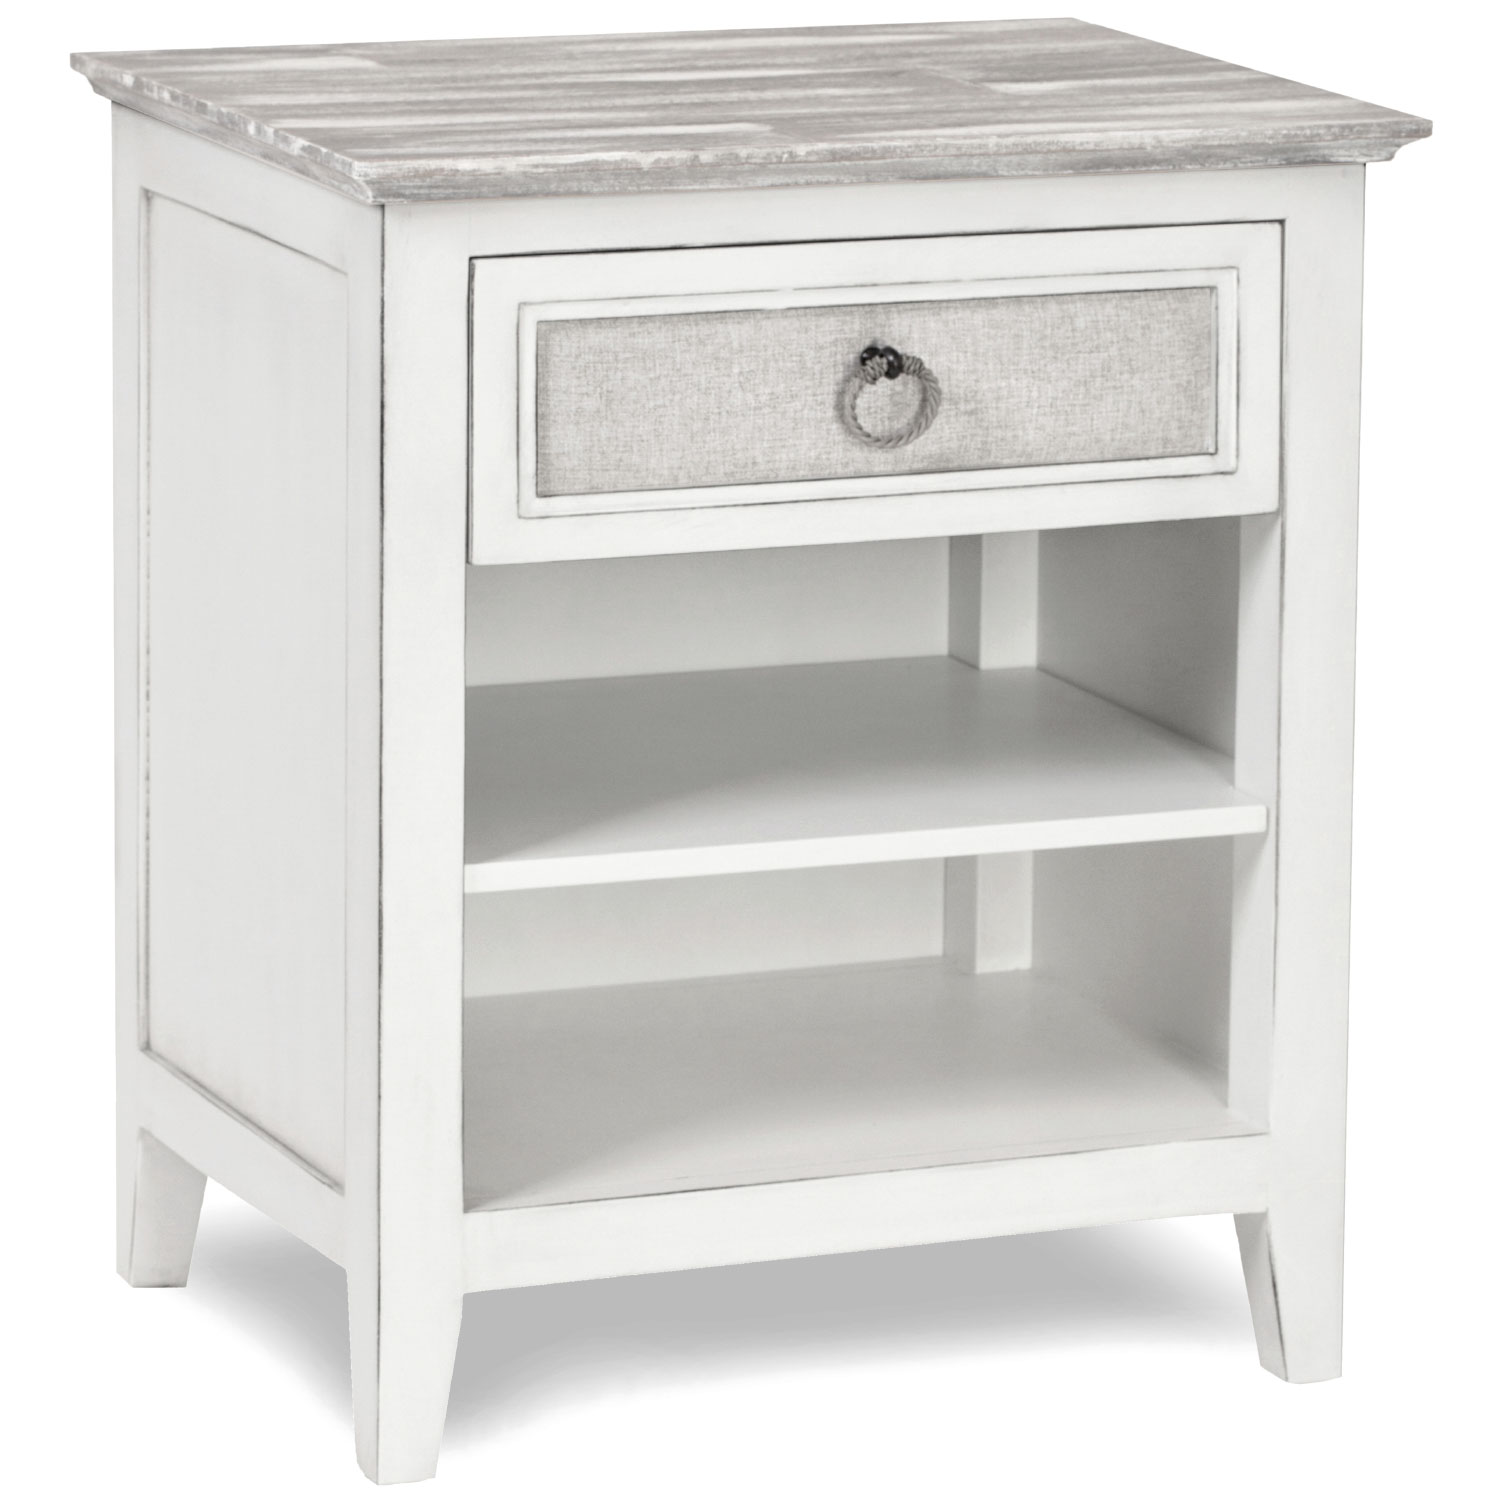 Captiva Island 1 Drawer Nightstand In Distressed Grey White By Sea Winds